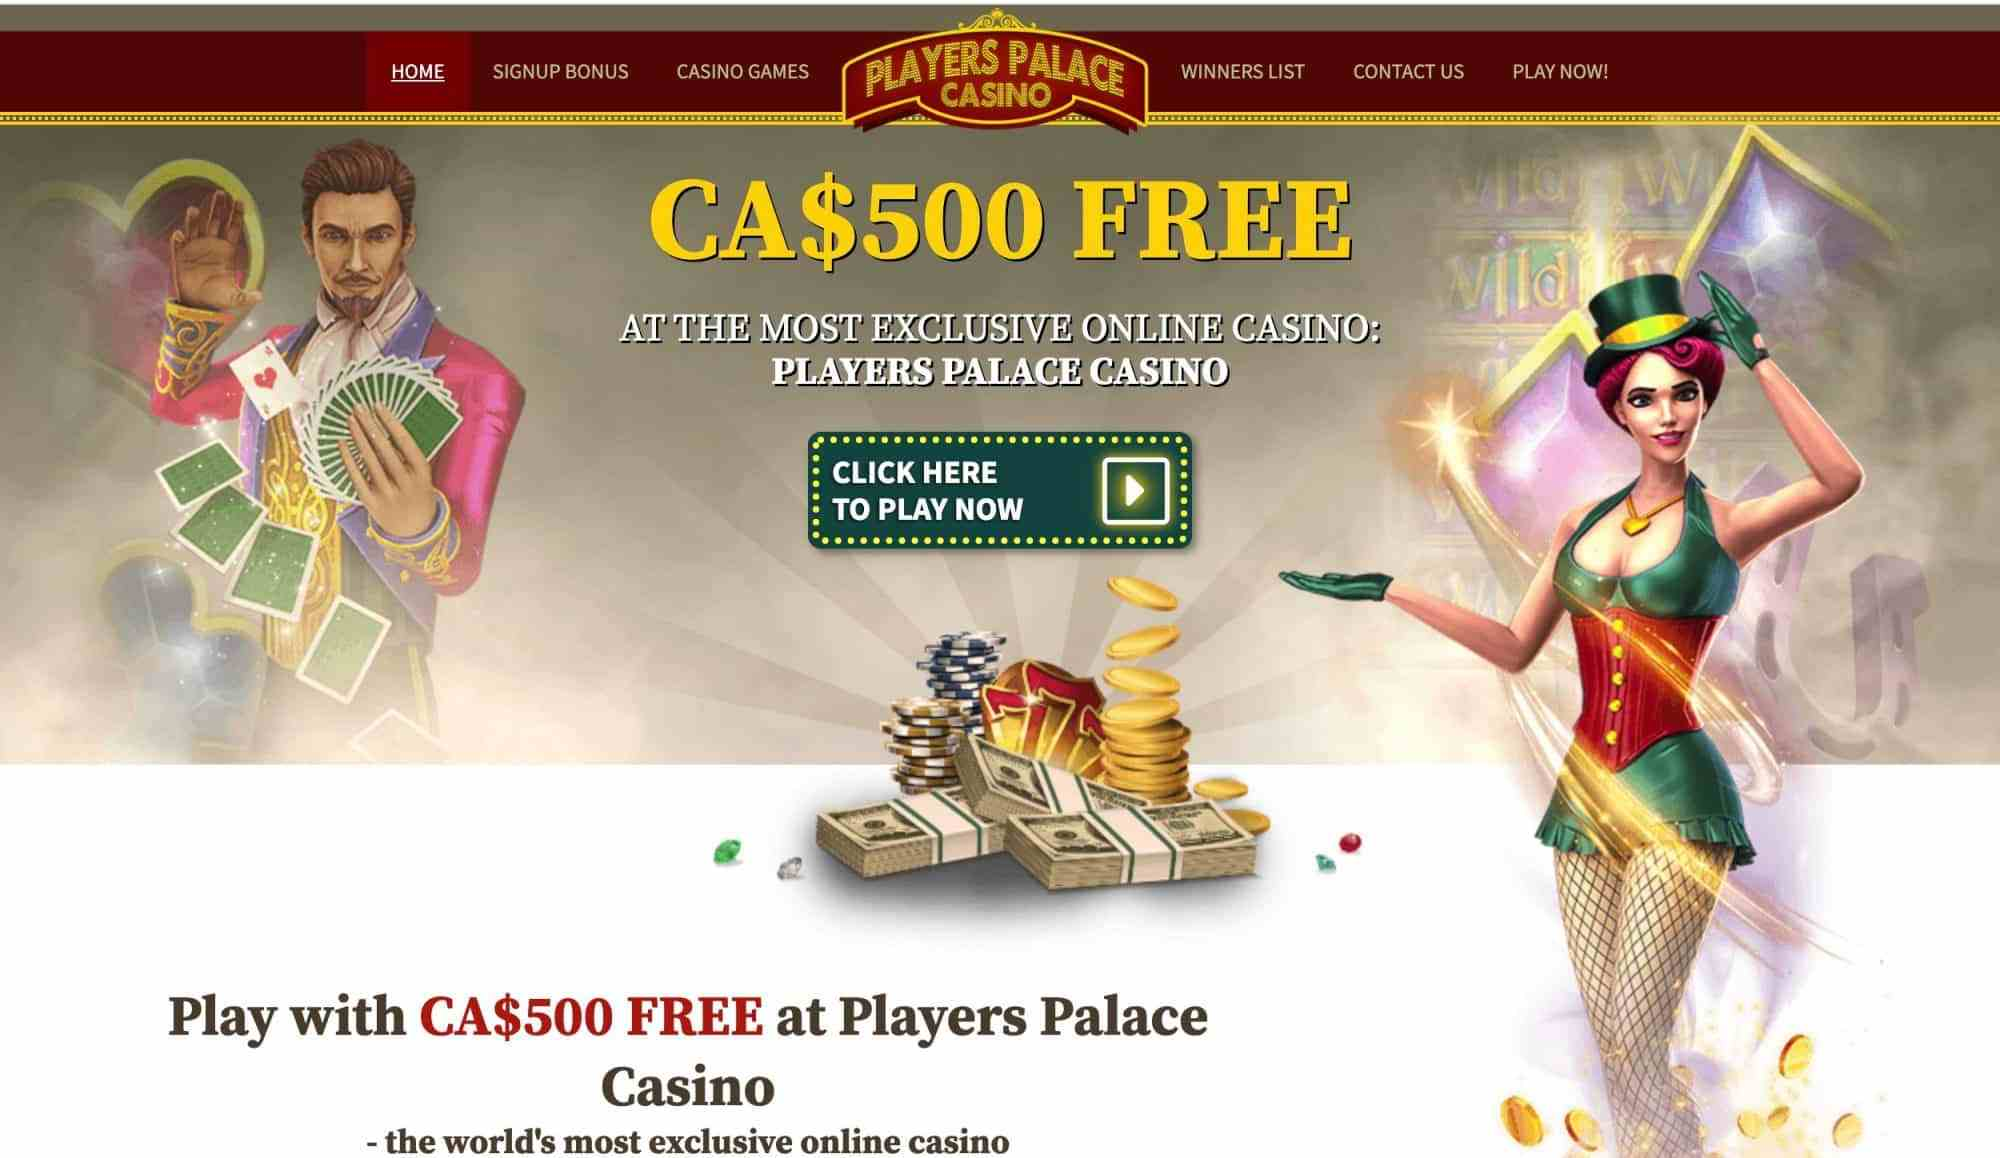 Players Palace Casino - Claim up to $500 free in welcome bonuses!